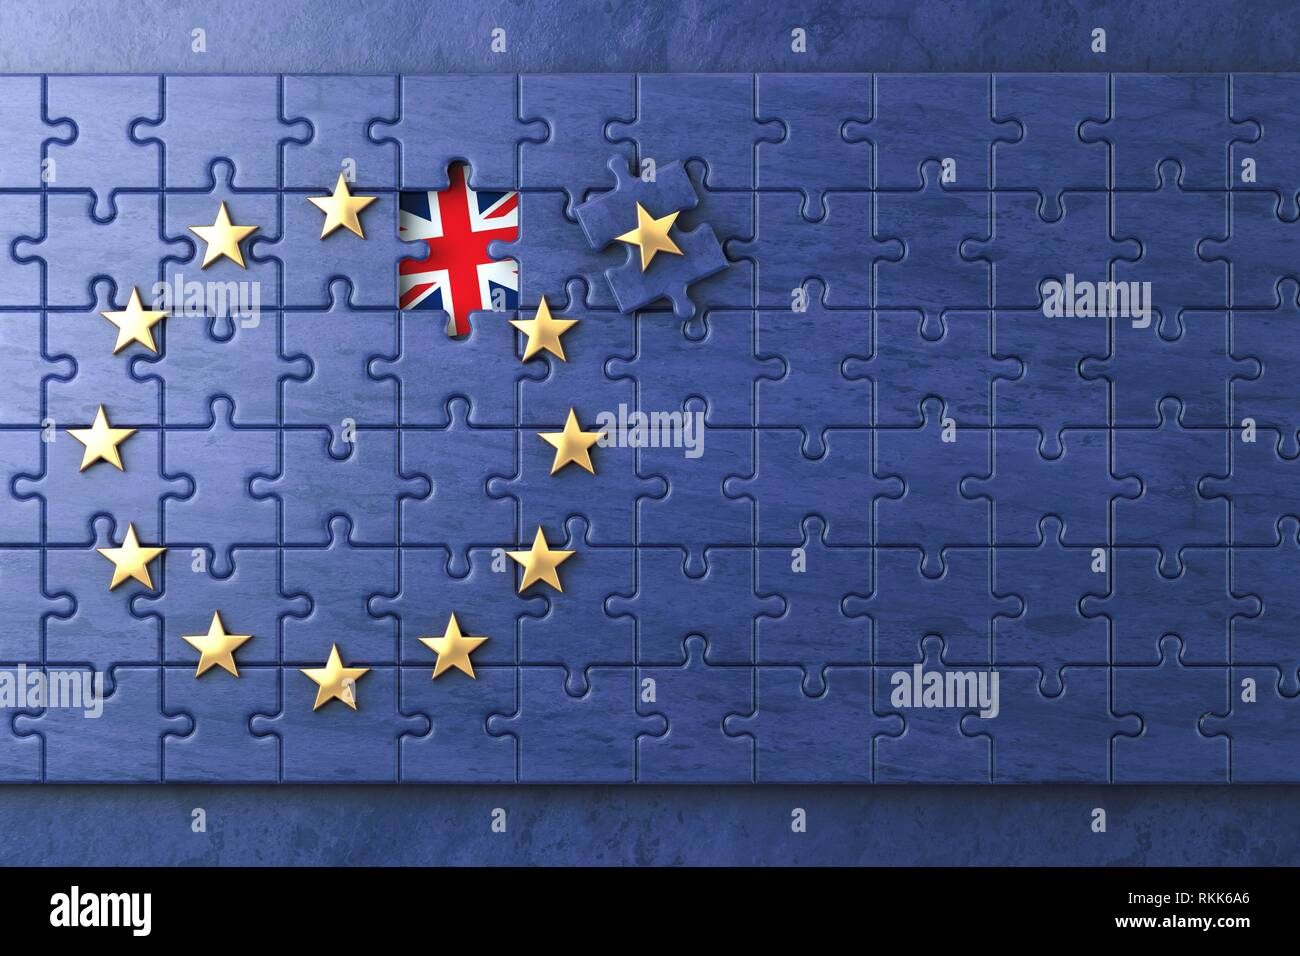 Brexit concept. Puzzle with EU European Union flag without Great Britain UK star. 3d illustration. - Stock Image